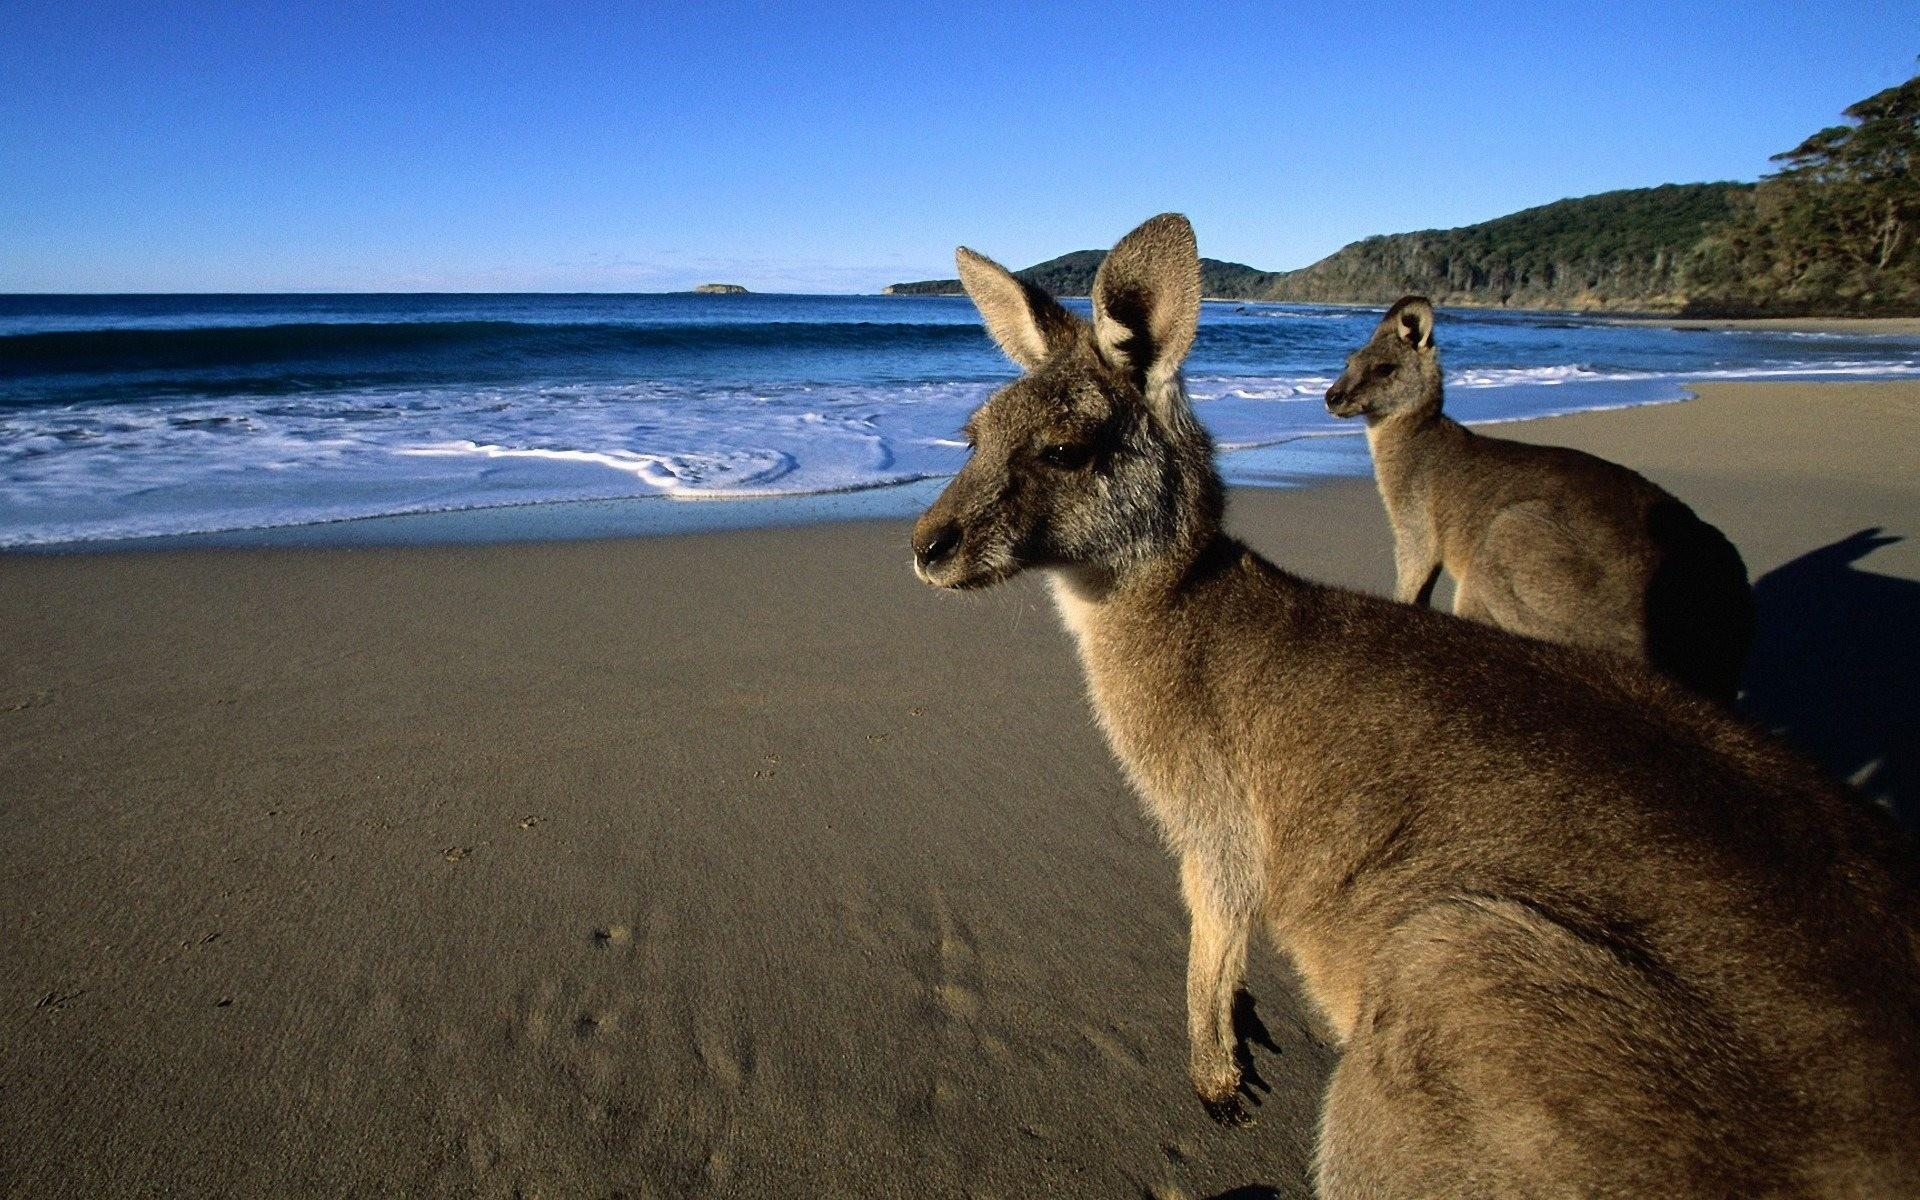 Kangaroo Live Wallpapers for Android